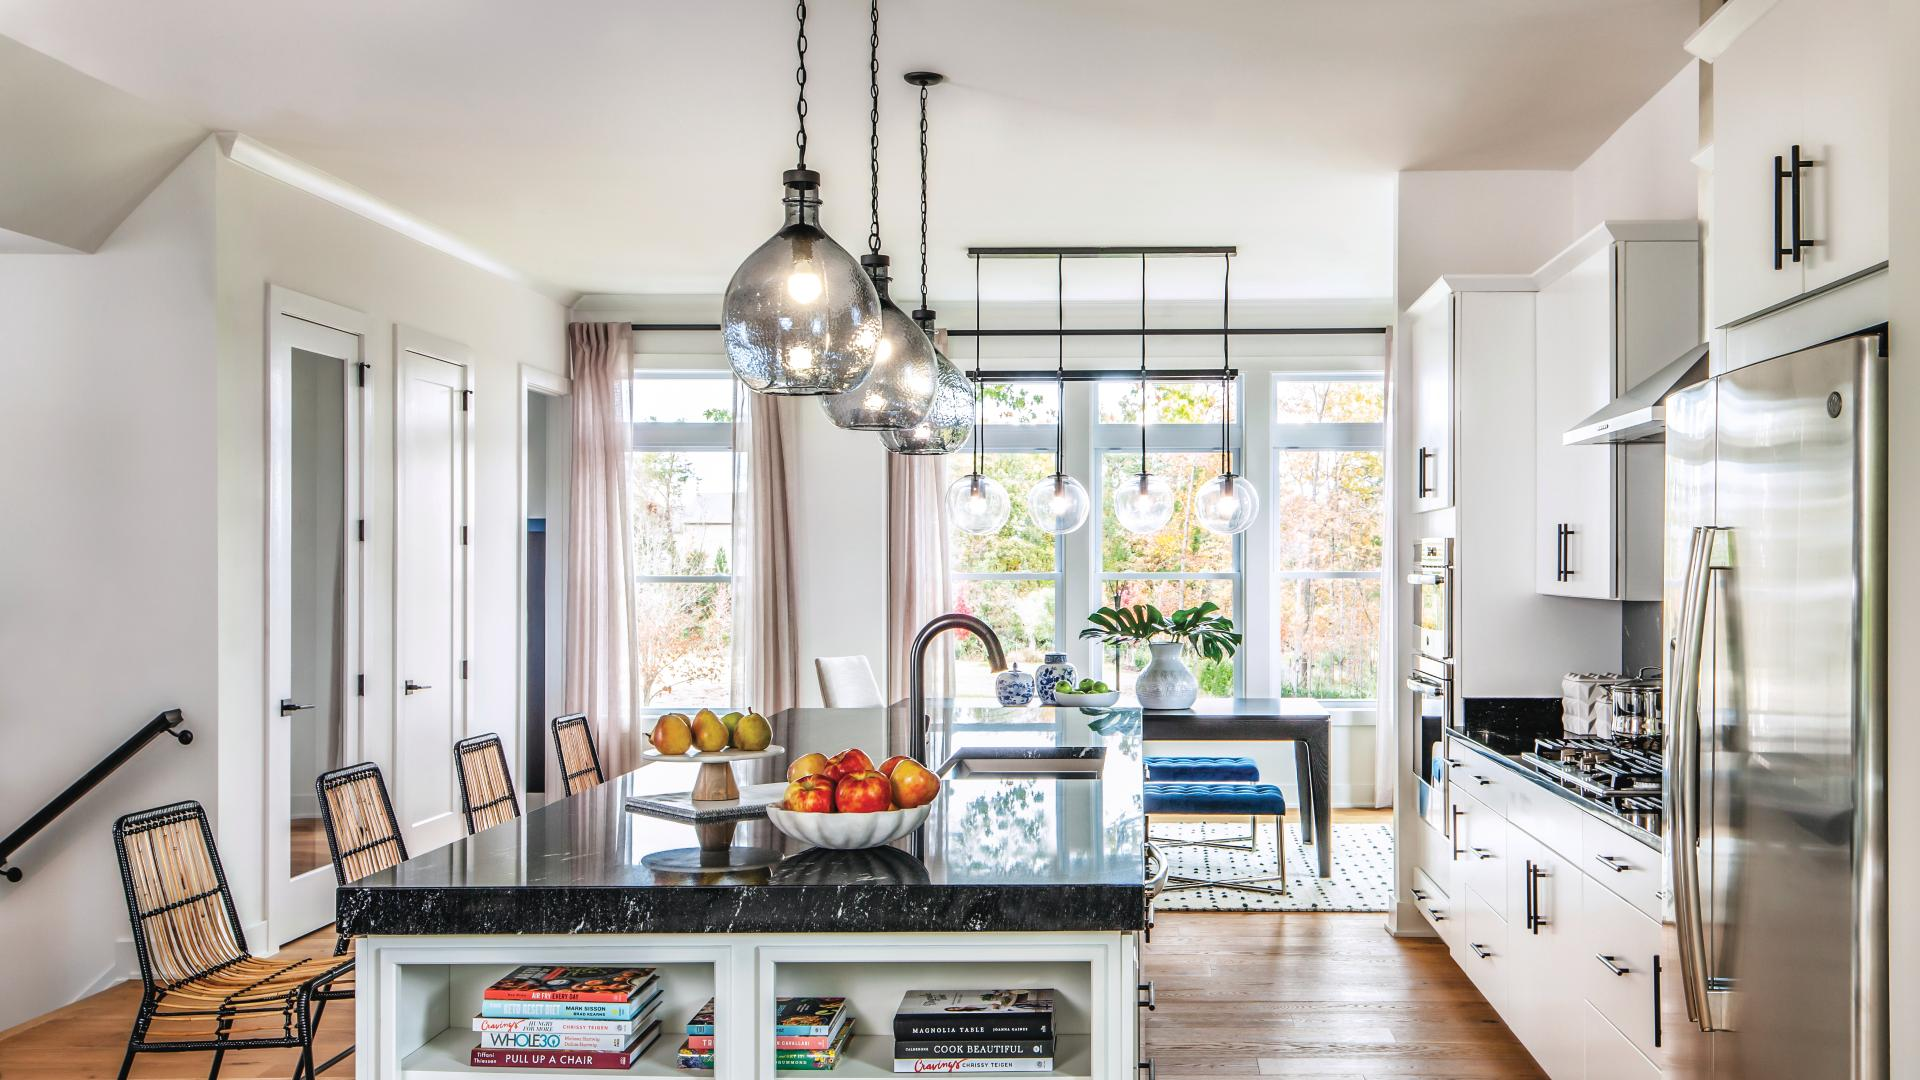 Stylish kitchens with name-brand appliances and granite countertops